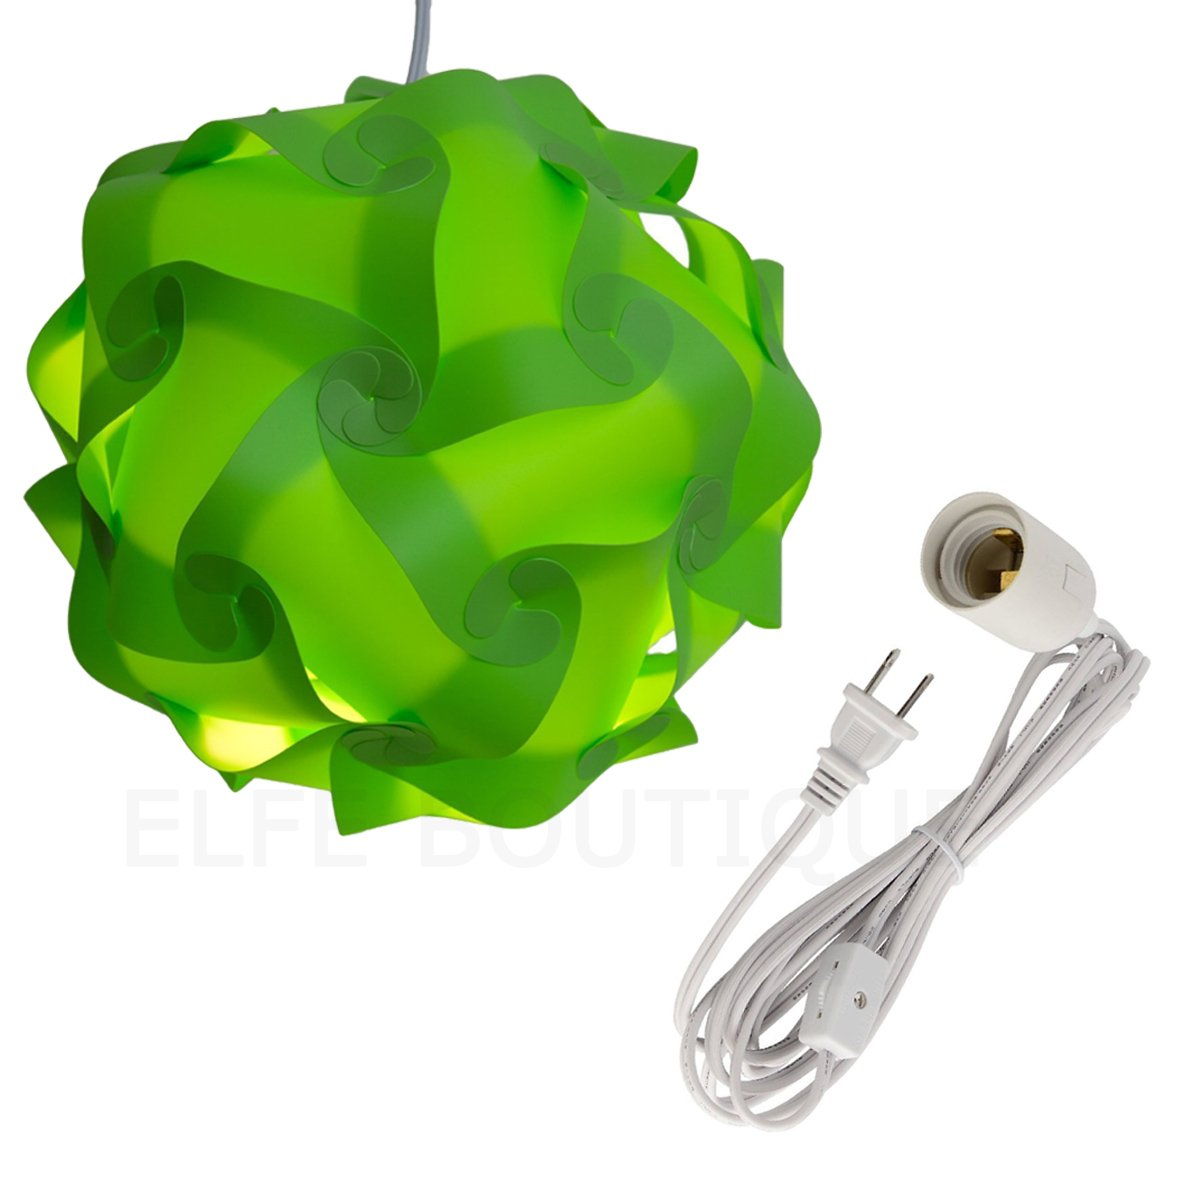 Puzzle Lights with Cord, Home Decoration Assembly Jigsaw Puzzle Lamp Shade Kit with 12' Hanging Lantern Cord with On/Off Switch,S Size (Green)